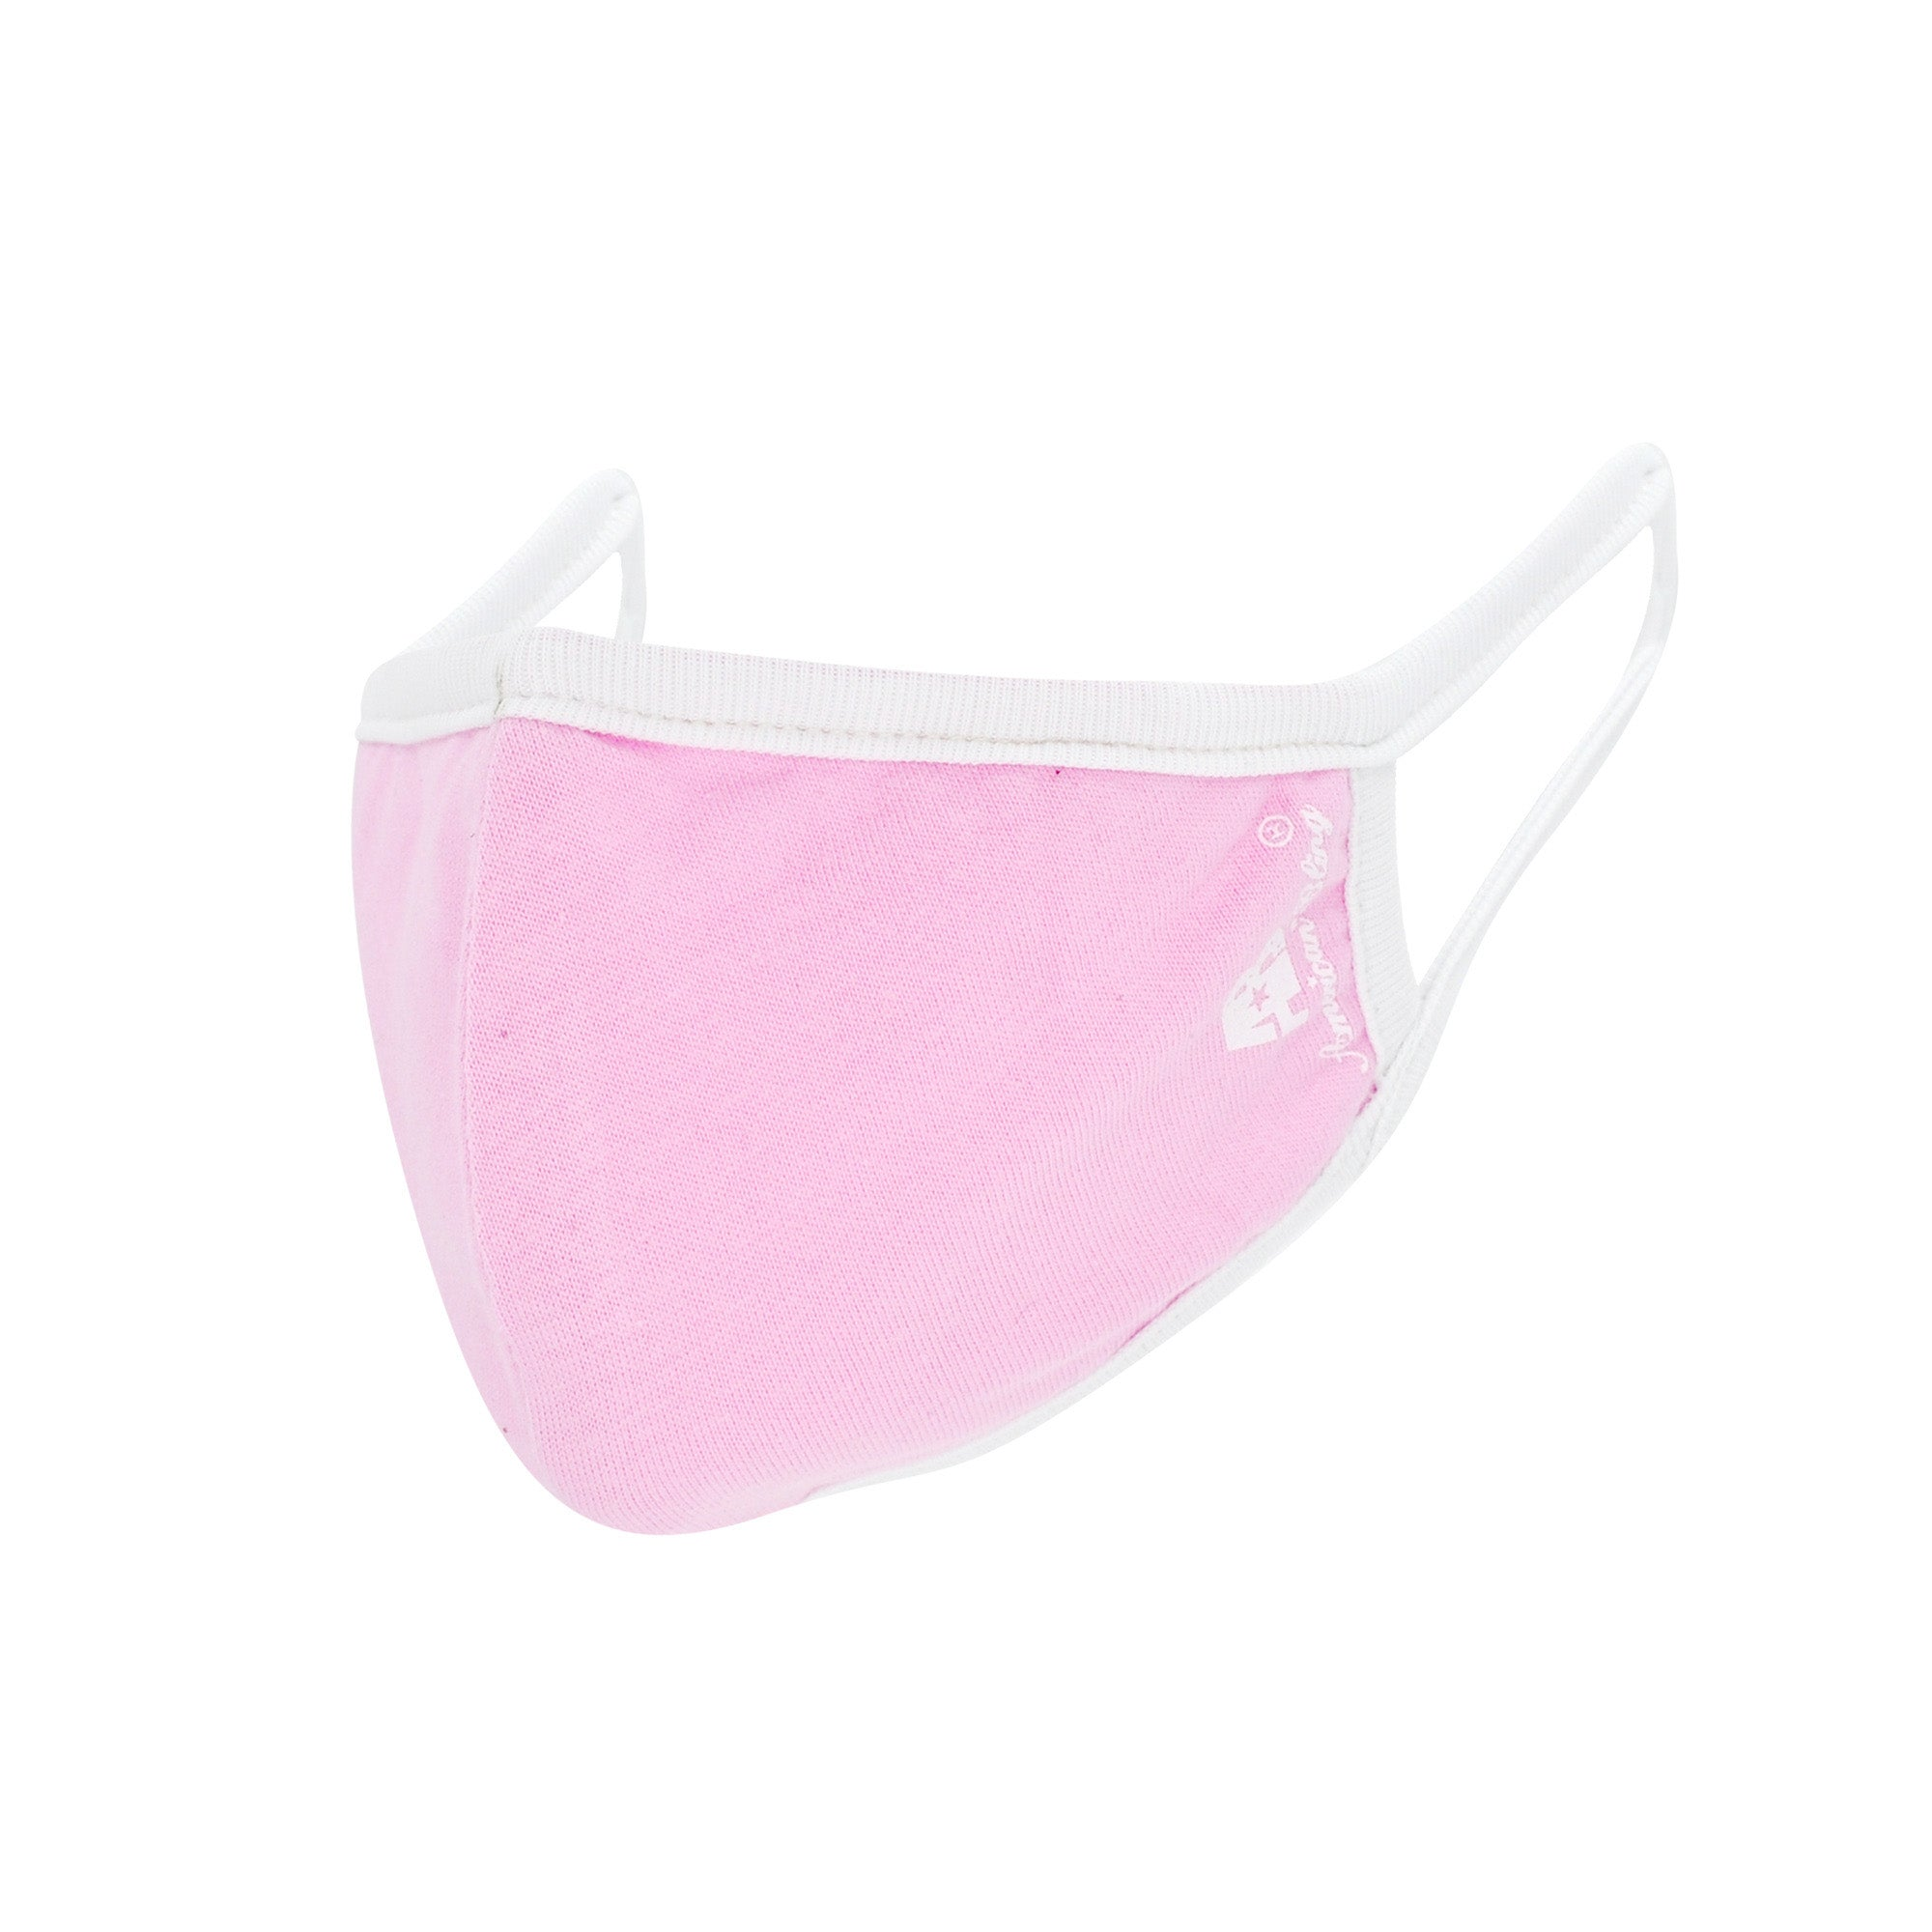 FCM-KD01 American Bling Kid Fabric Face Mask Double Layer with Adjustable Nose Clip 1PC  Pack